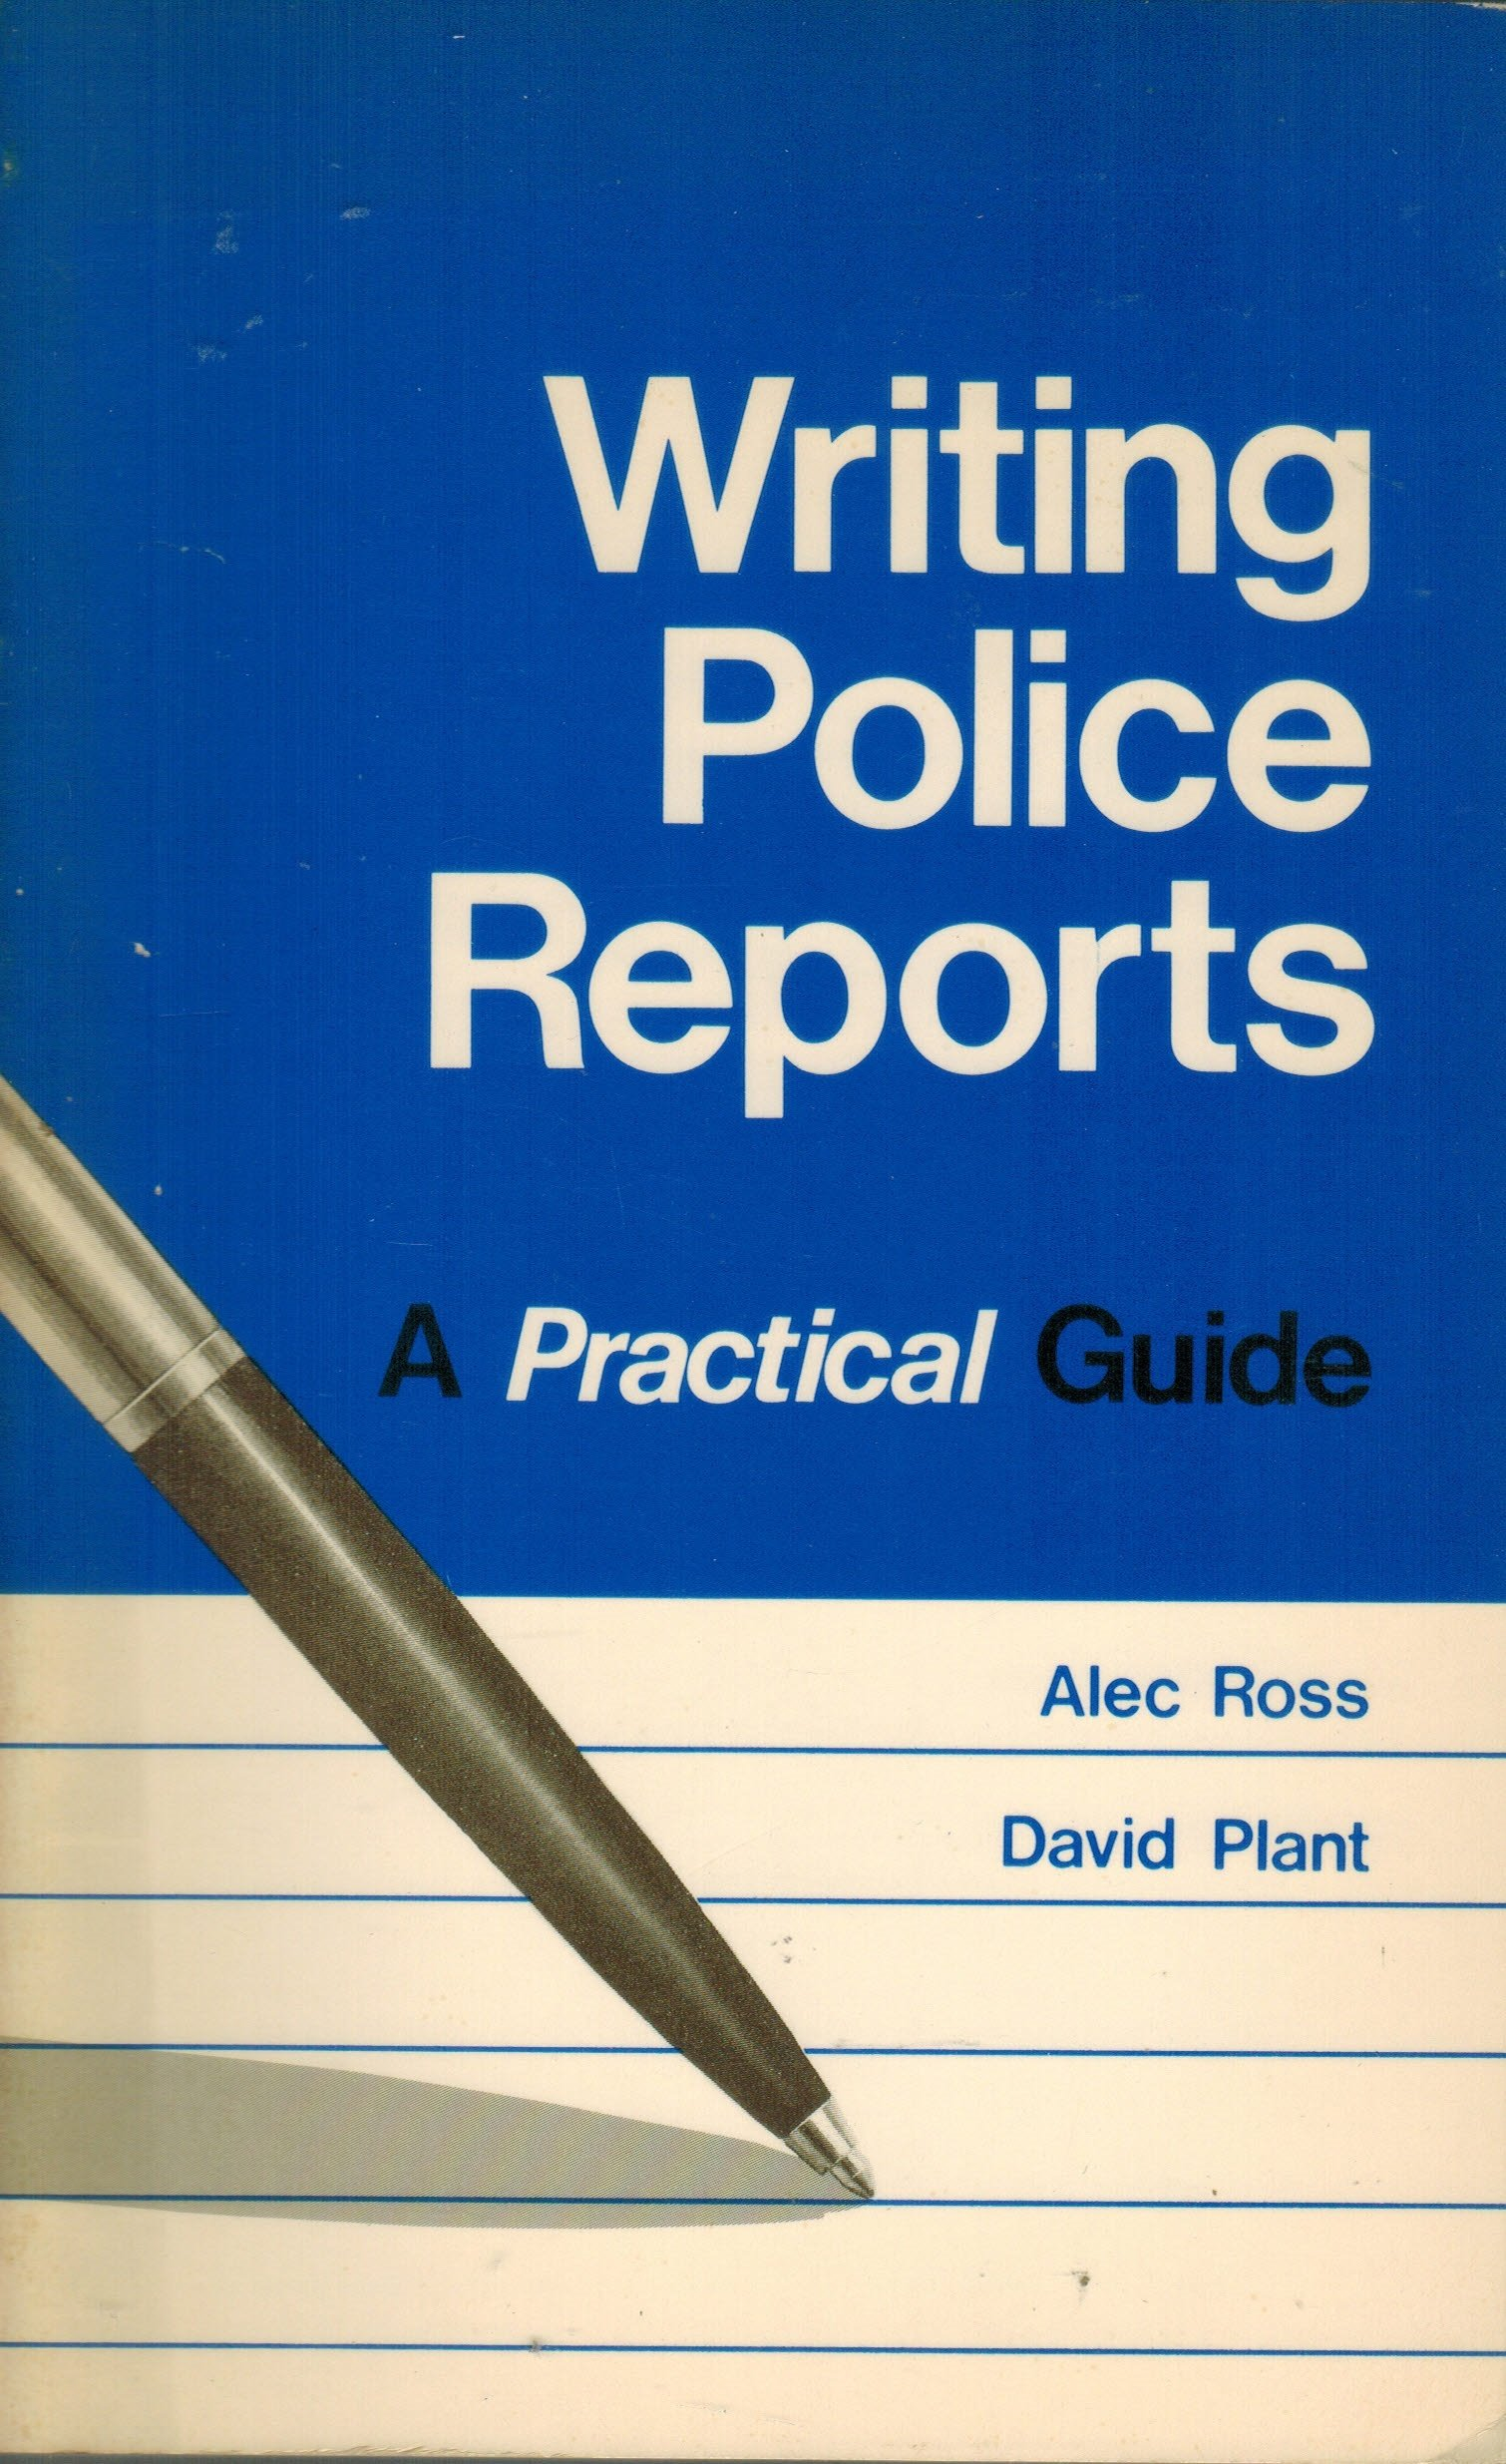 Writing Police Reports: A Practical Guide: Alec Ross, David Plant:  9780916070038: Amazon.com: Books